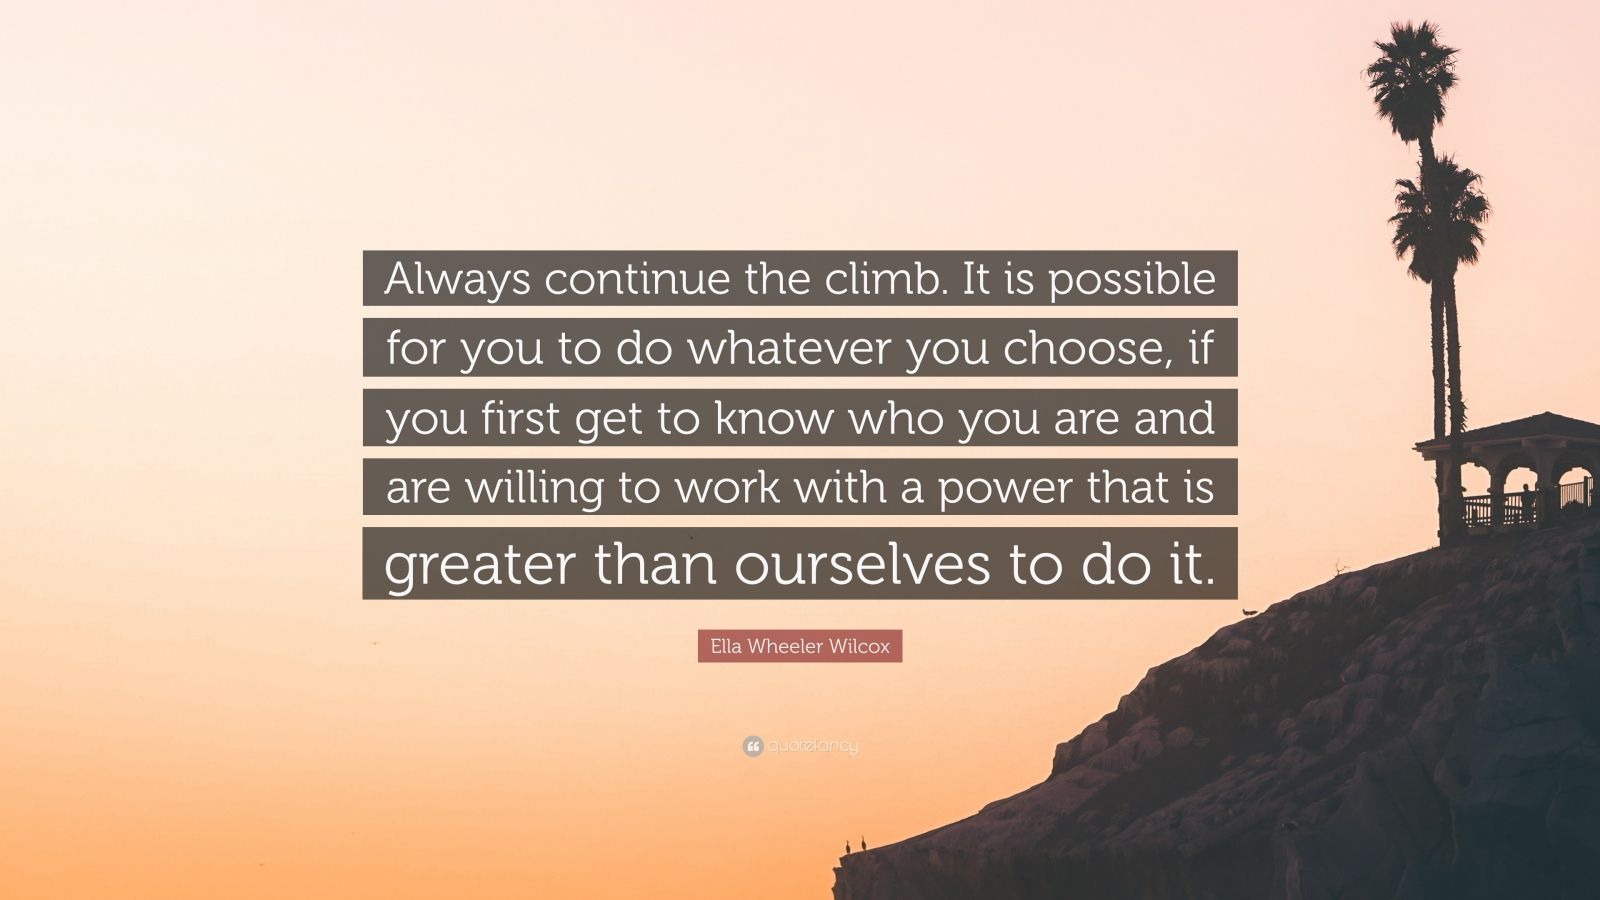 """Ella Wheeler Wilcox Quote: """"Always continue the climb. It is possible for you to do whatever you choose, if you first get to know who you are and are willing to work with a power that is greater than ourselves to do it."""""""